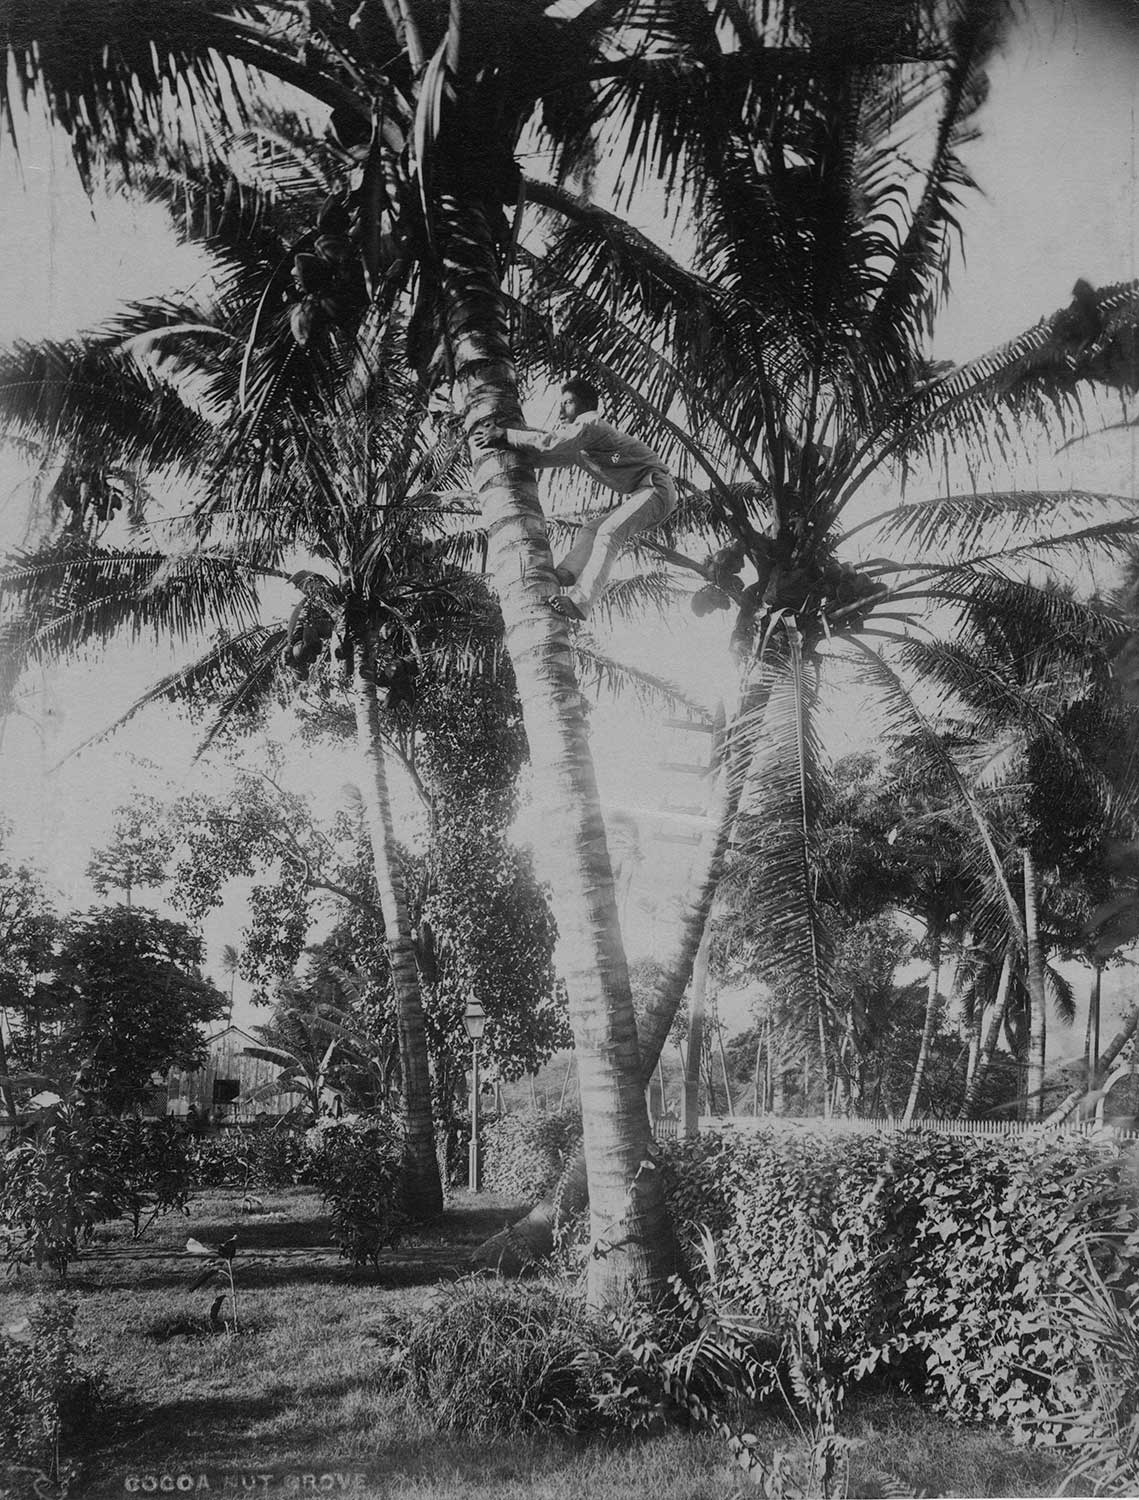 Black and white developed image of a man climbing a coconut tree.